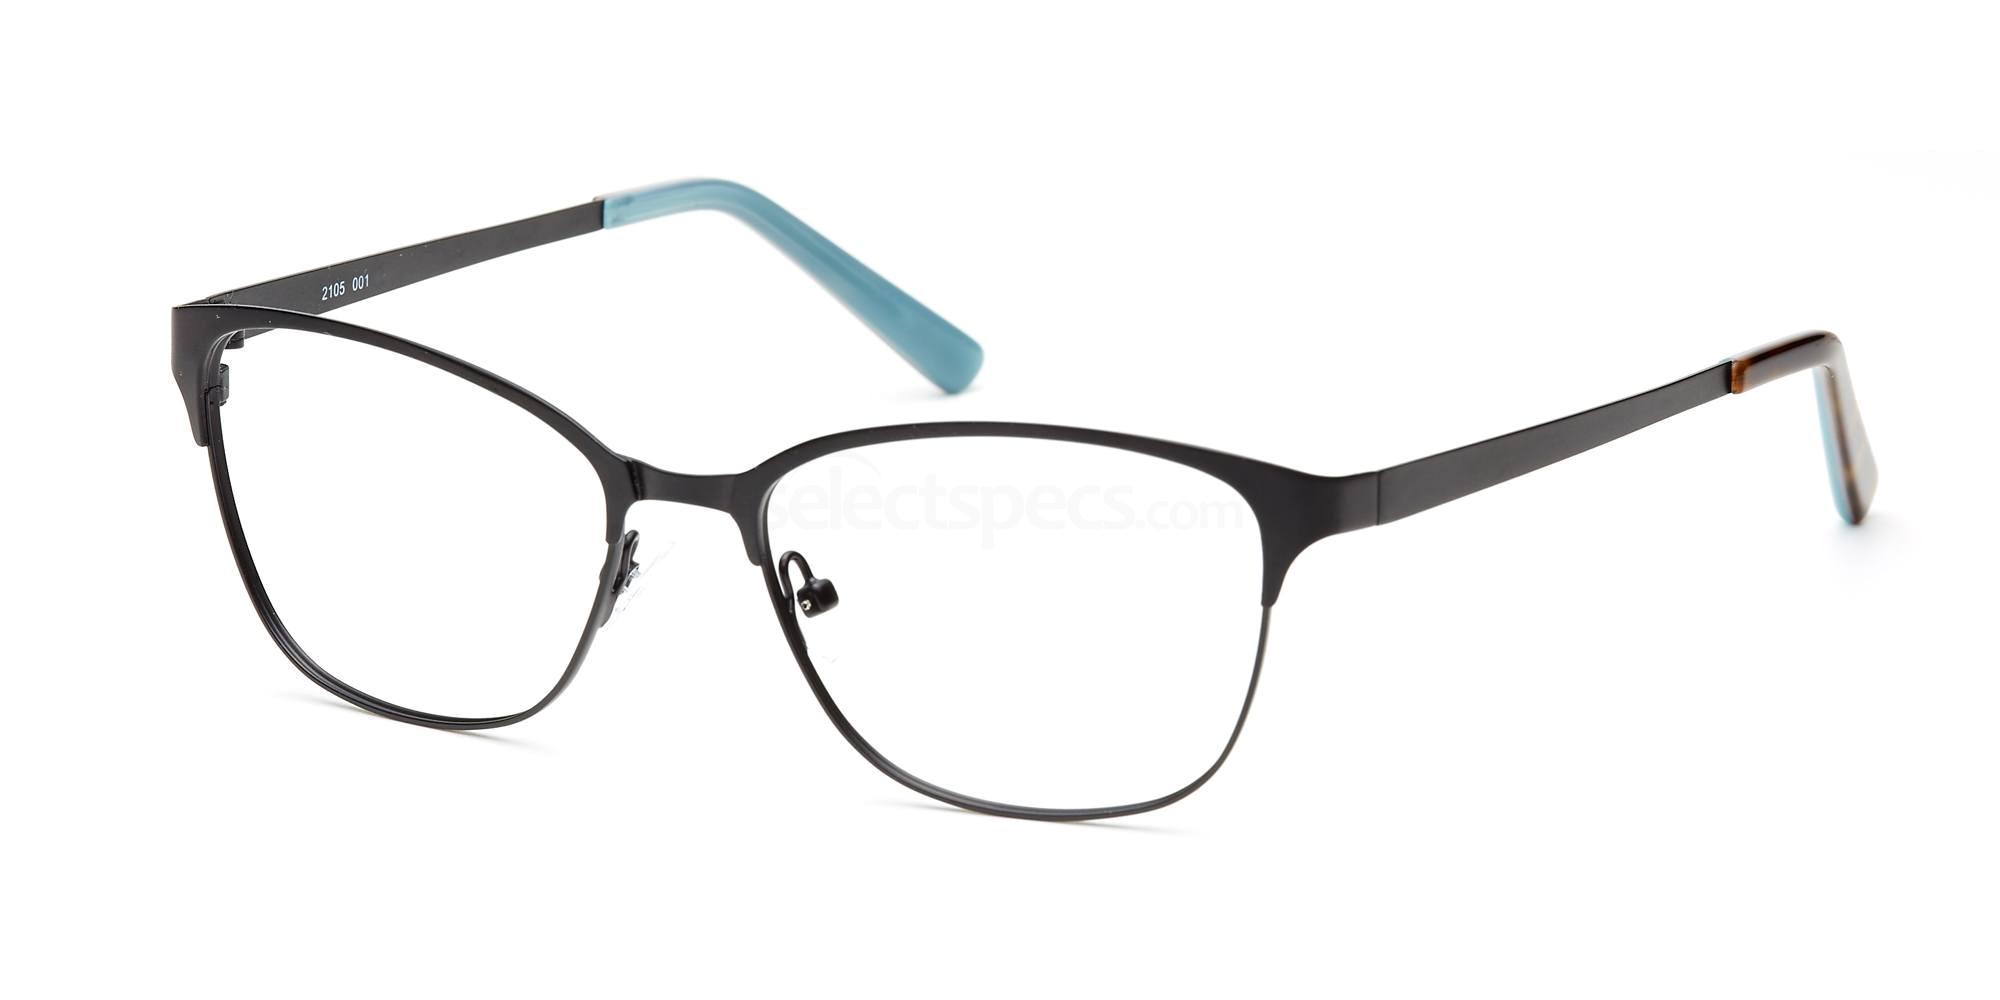 C1 FLX2105 Glasses, Flextra